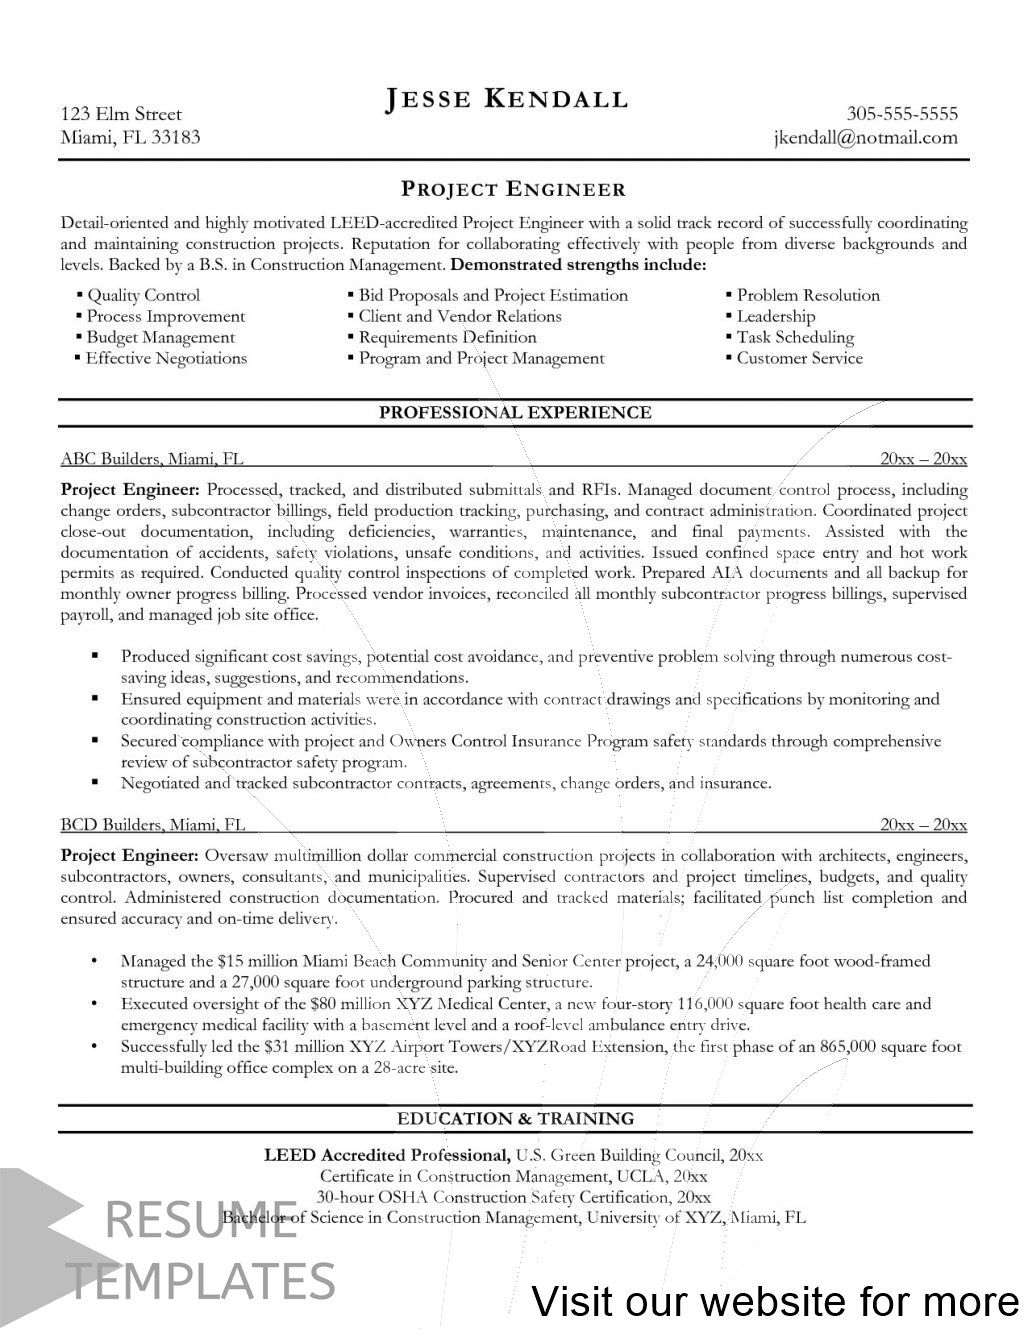 Resume Template Adobe Illustrator In 2020 Engineering Resume Project Manager Resume Job Resume Samples